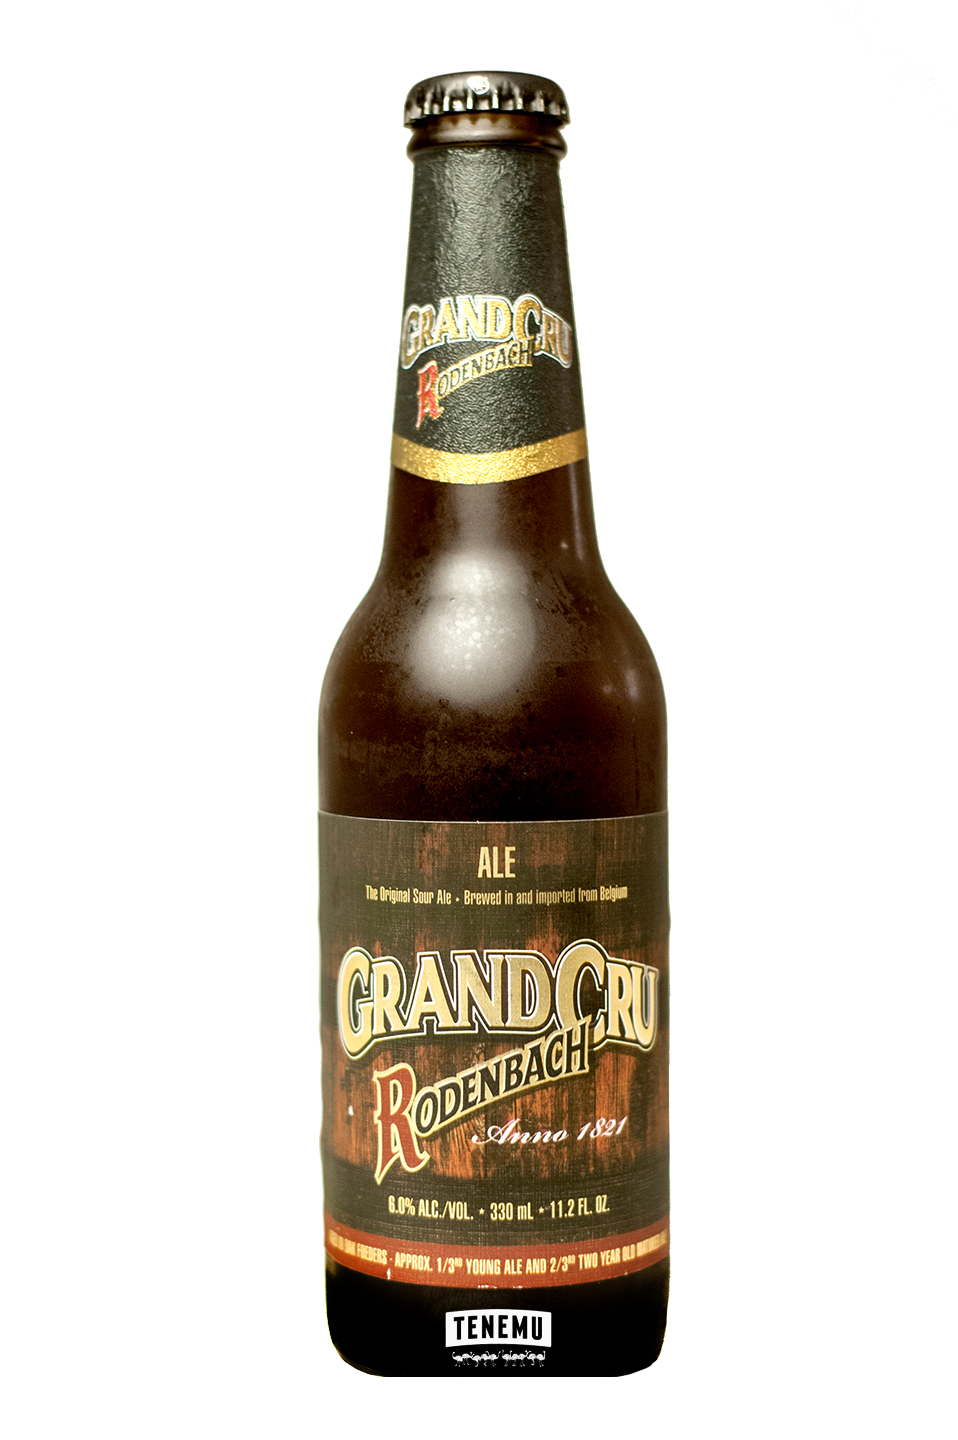 rodenbach-grand-cru-bottle